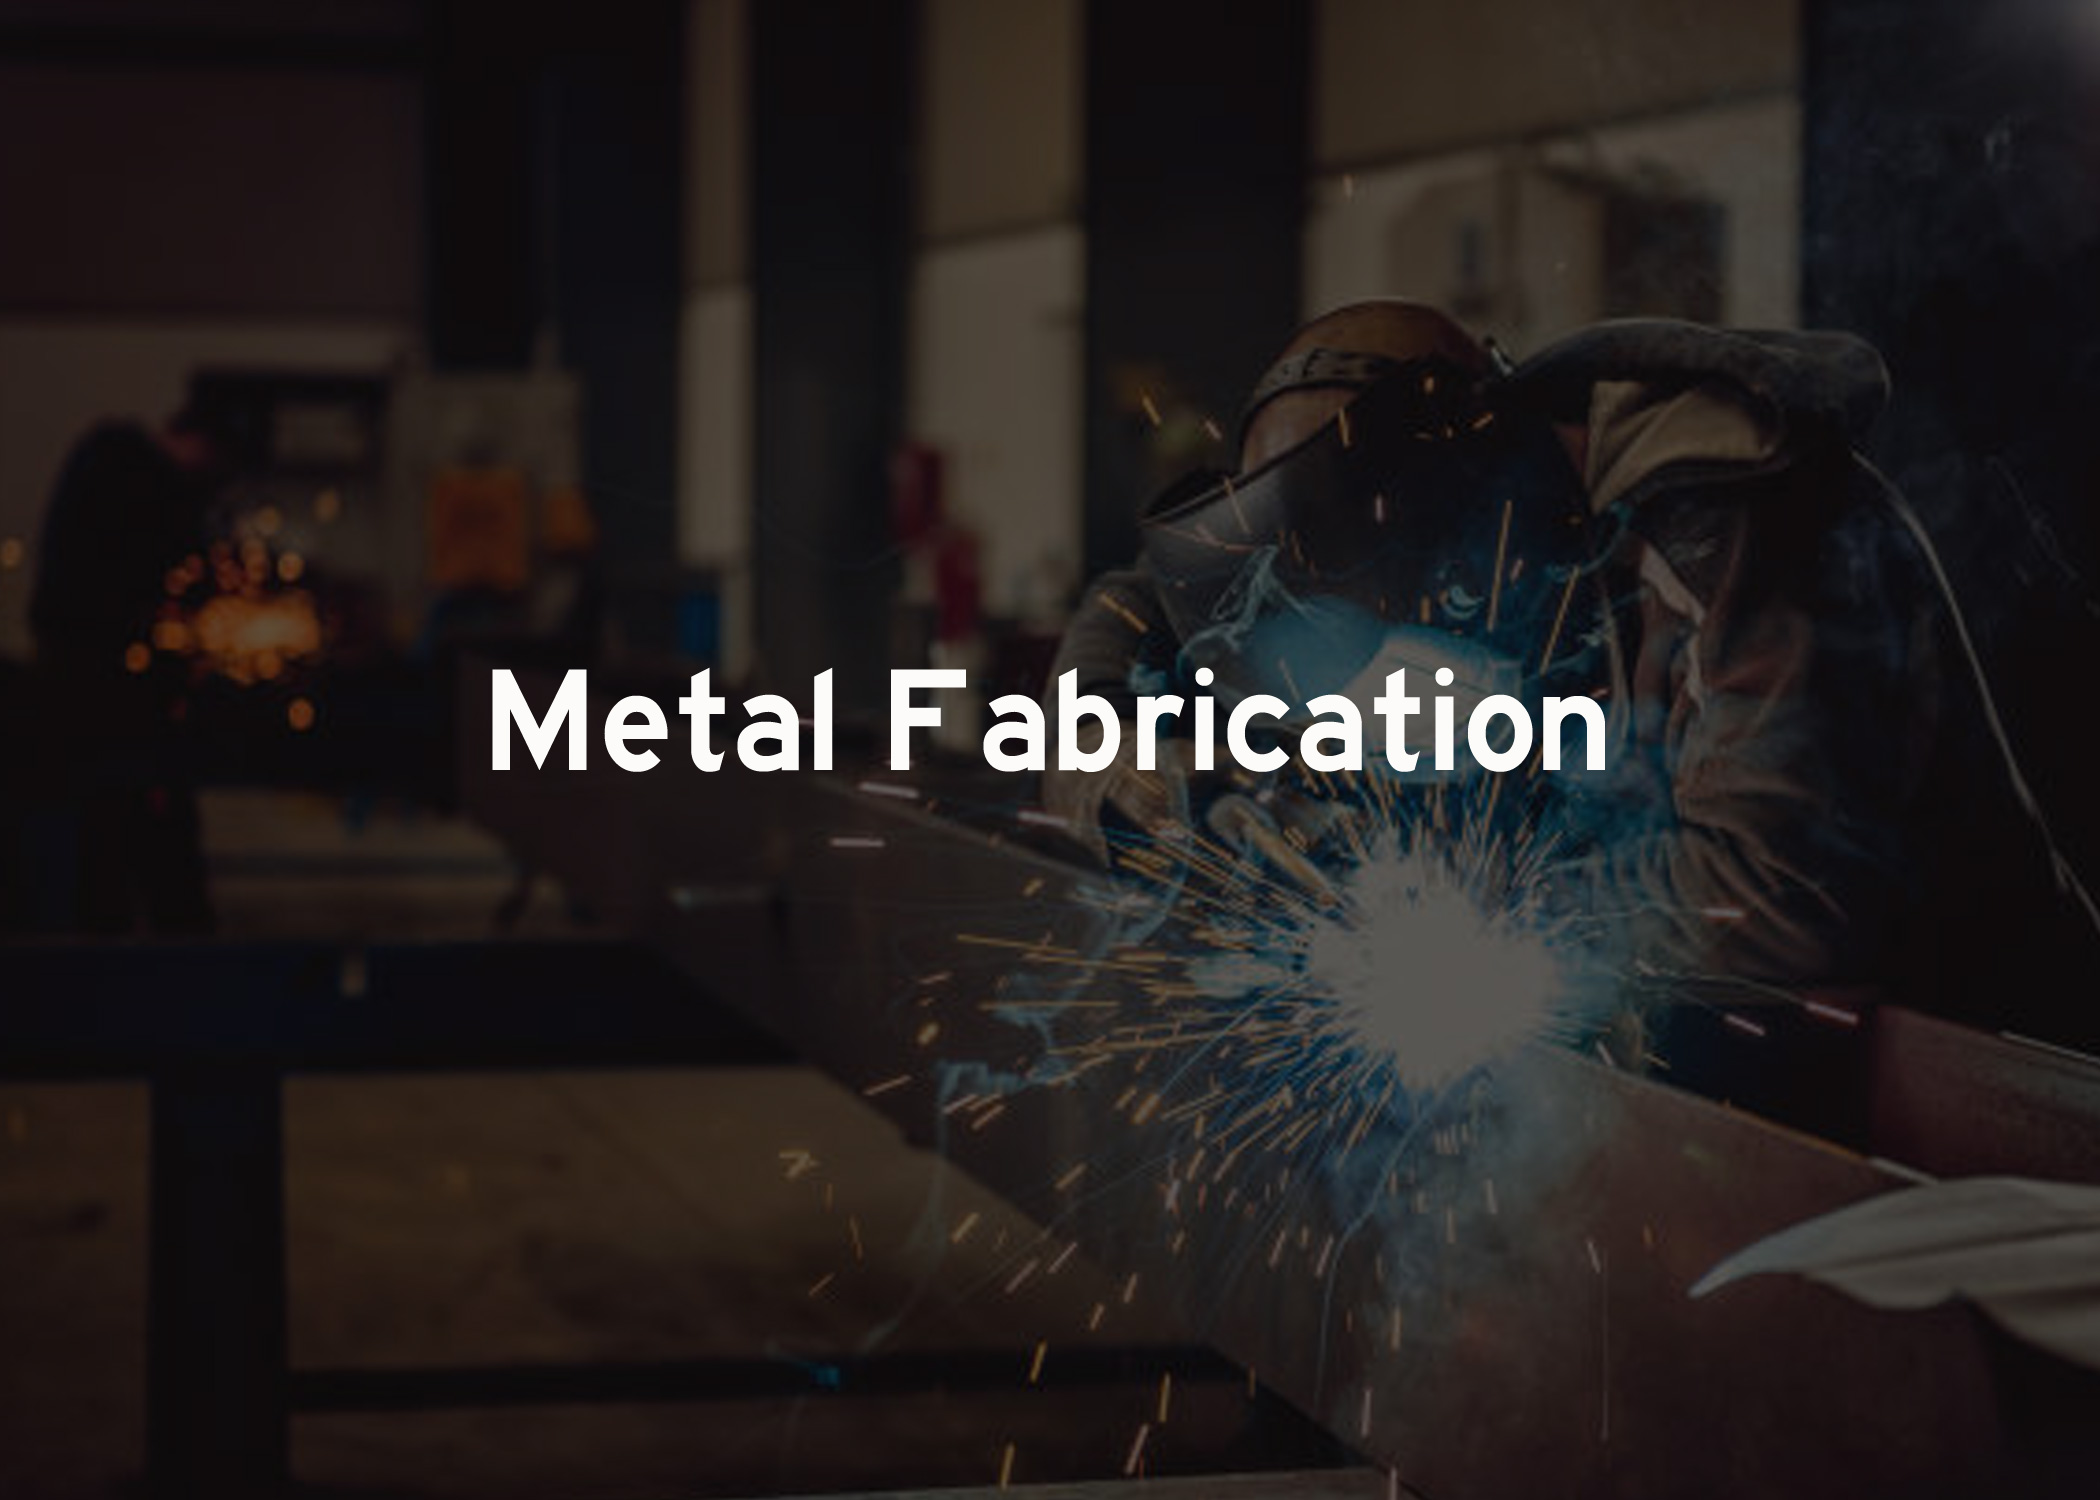 Metal-Fabrication-Thumbnail.jpg